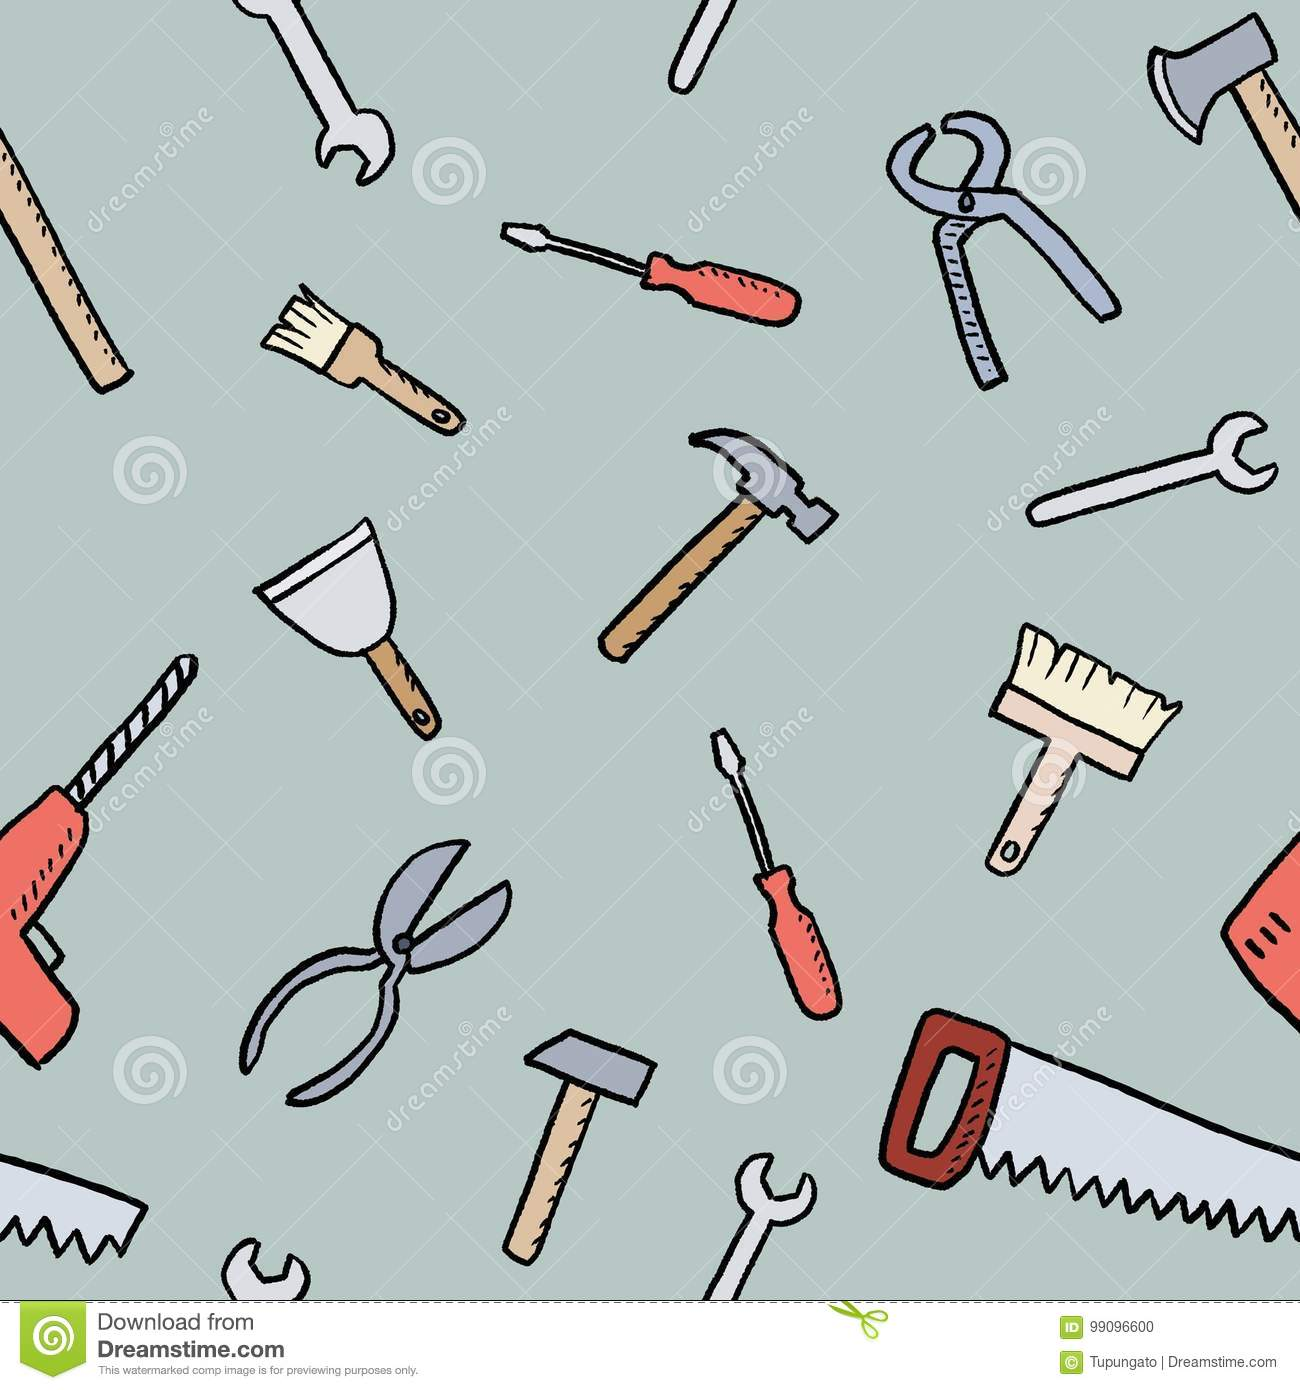 Cartoon tools background stock vector. Image of nail ...